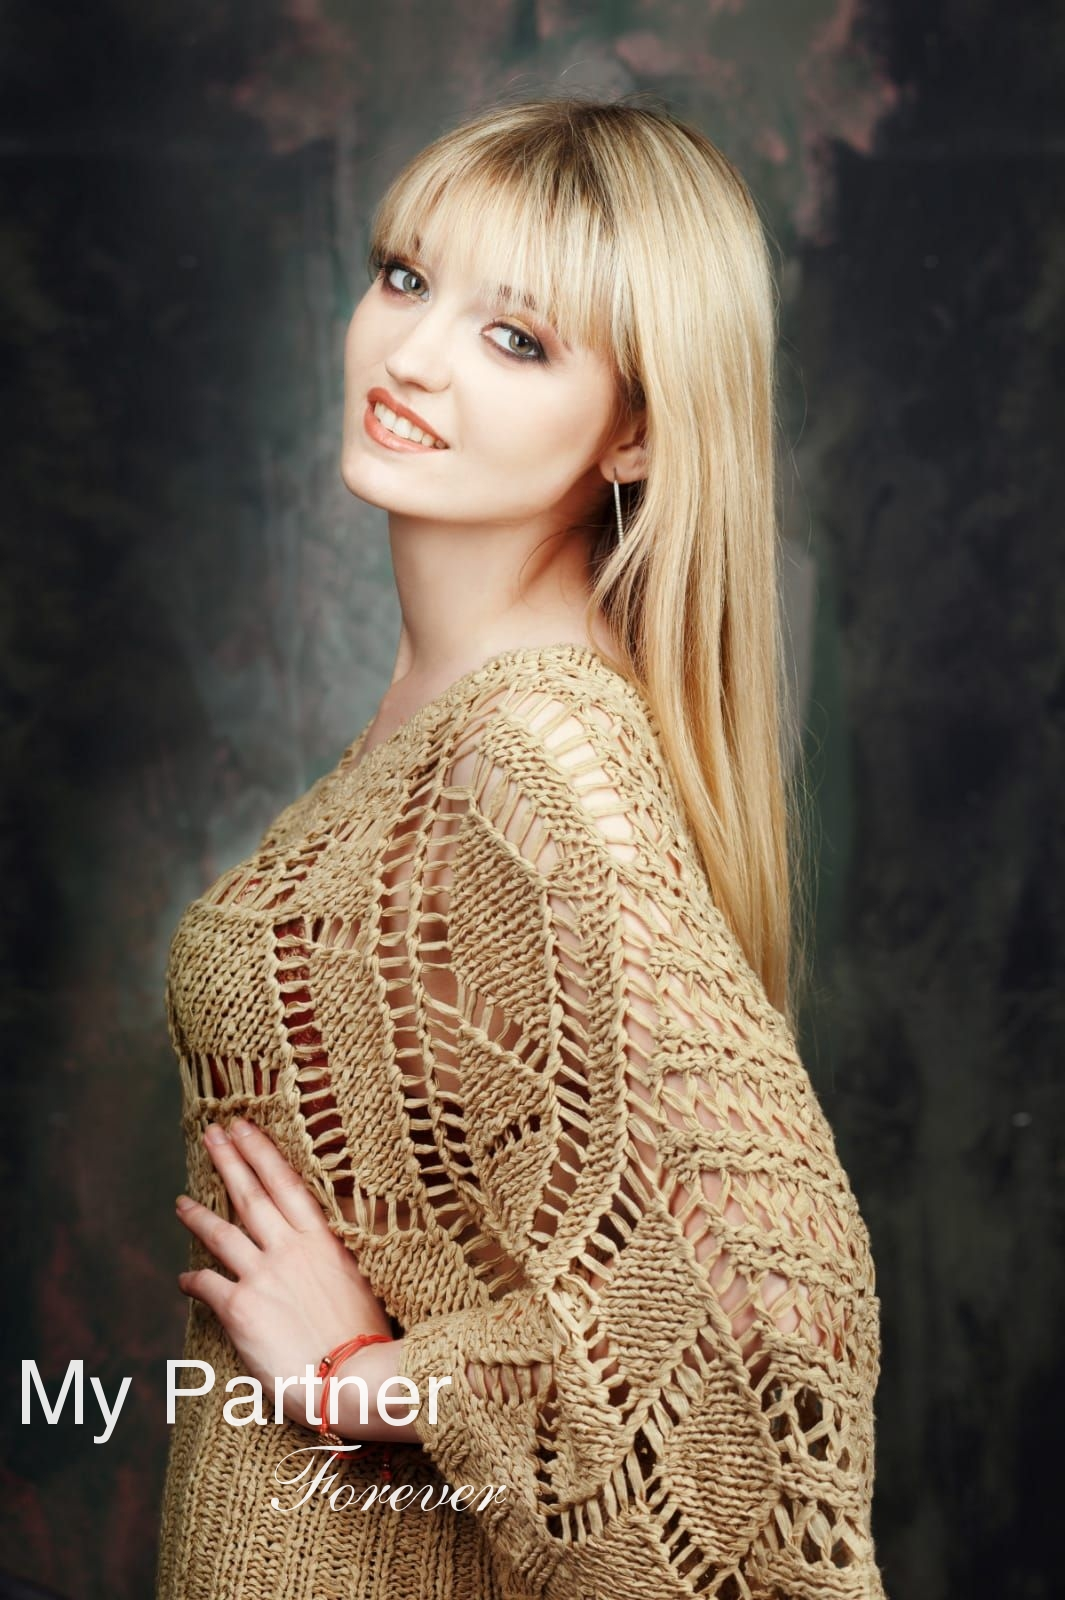 Dating Site to Meet Stunning Belarusian Lady Kamila from Grodno, Belarus